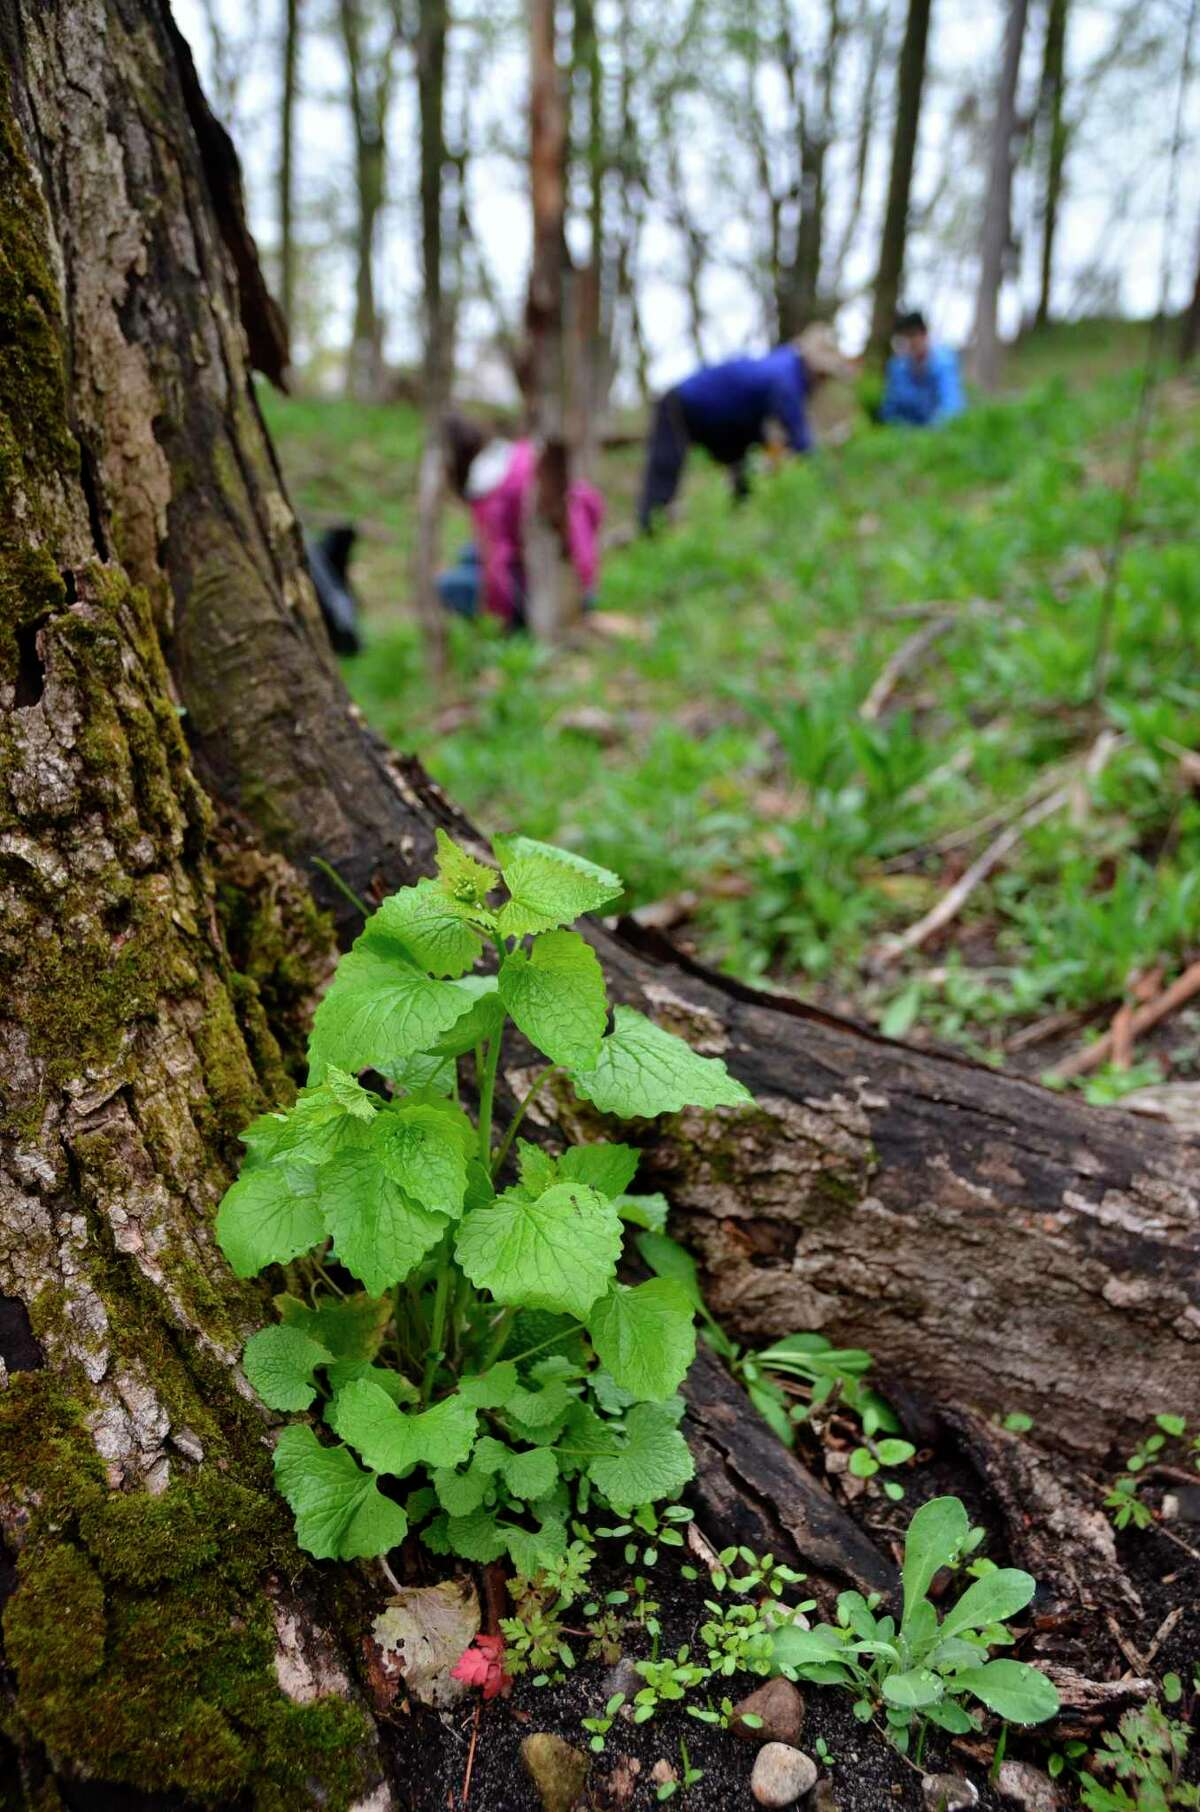 The Northwest Michigan Invasive Species Network will host a series of work bees in Benzie, Grand Traverse, Leelanau and Manistee Counties to remove invasive garlic mustard. (Courtesy Photo)